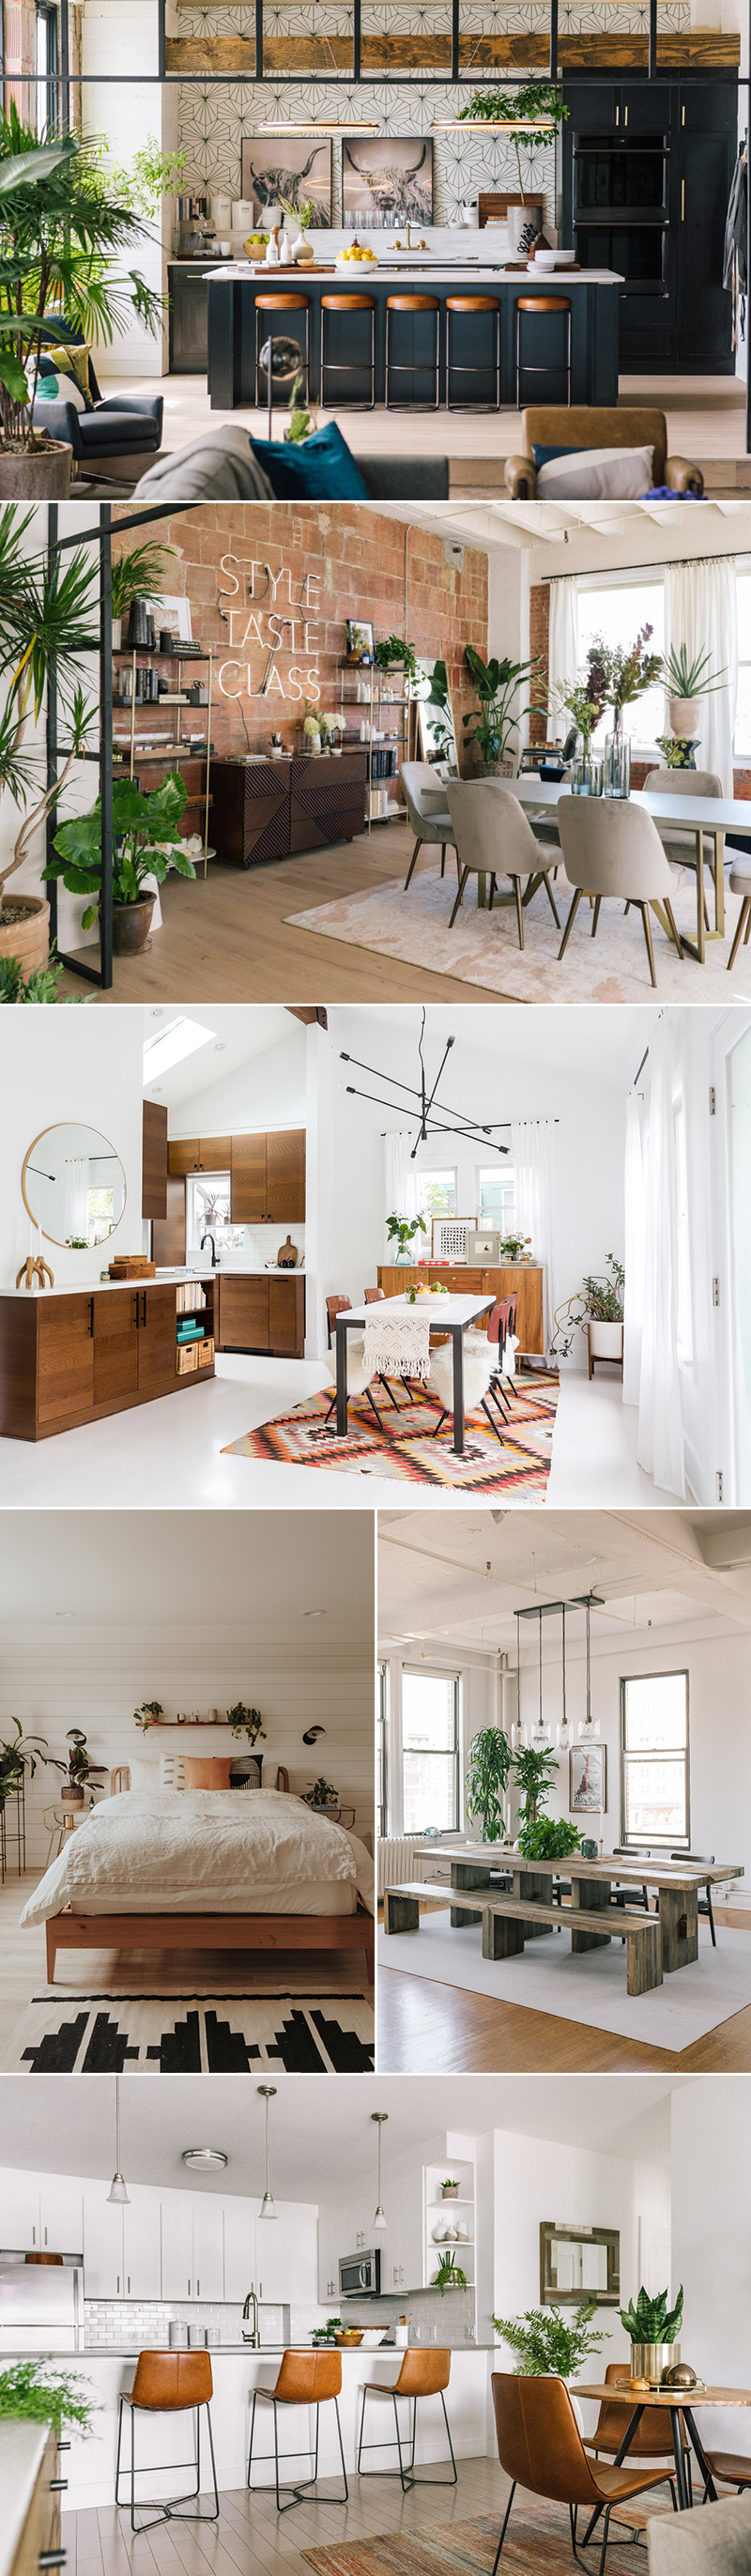 home decor interior design trends 2019 - boho industrial